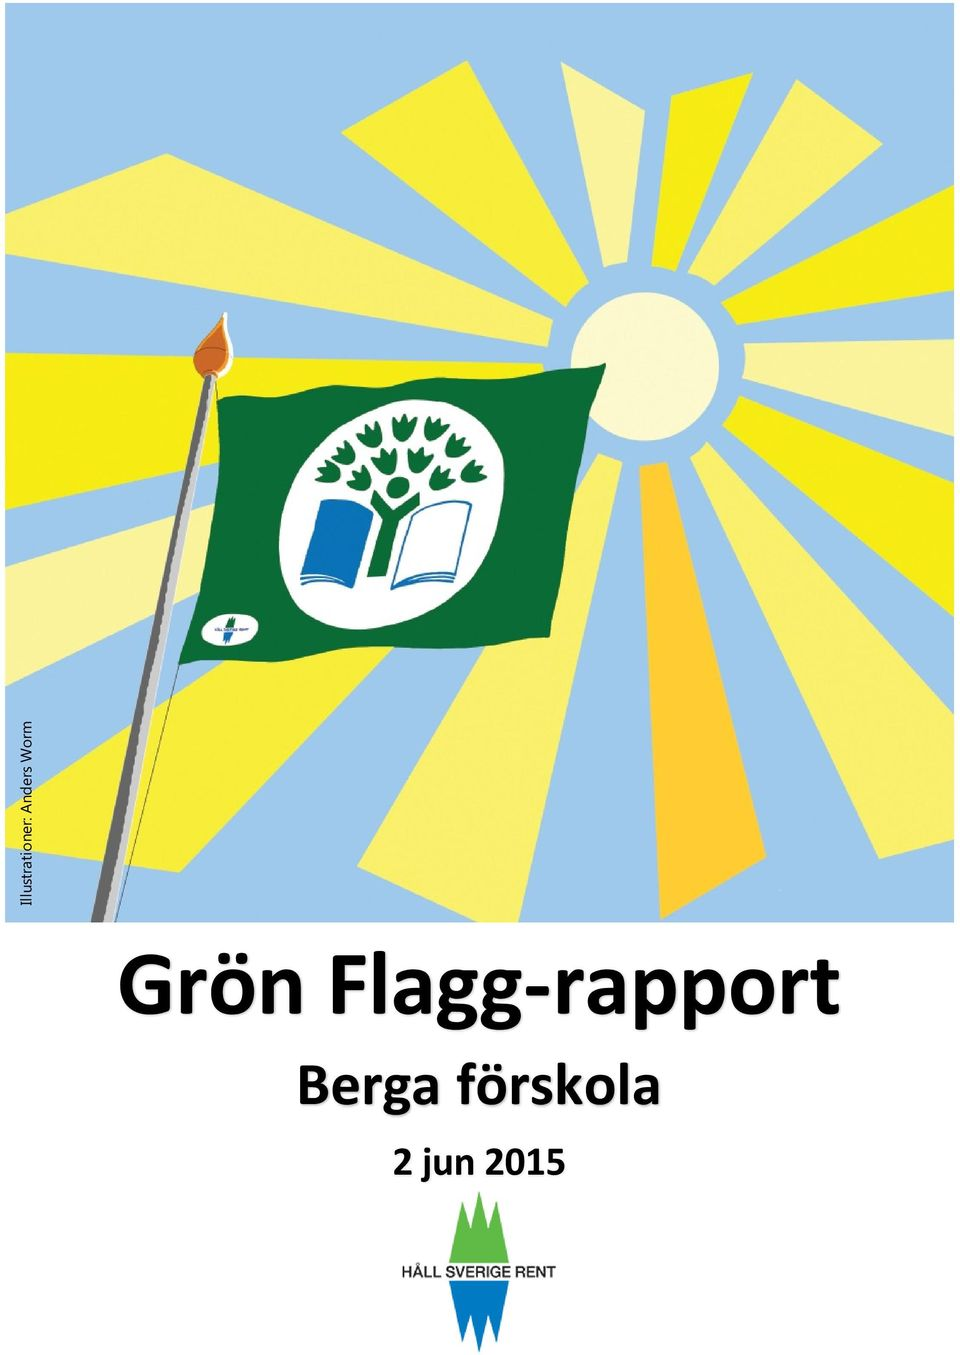 Flagg-rapport